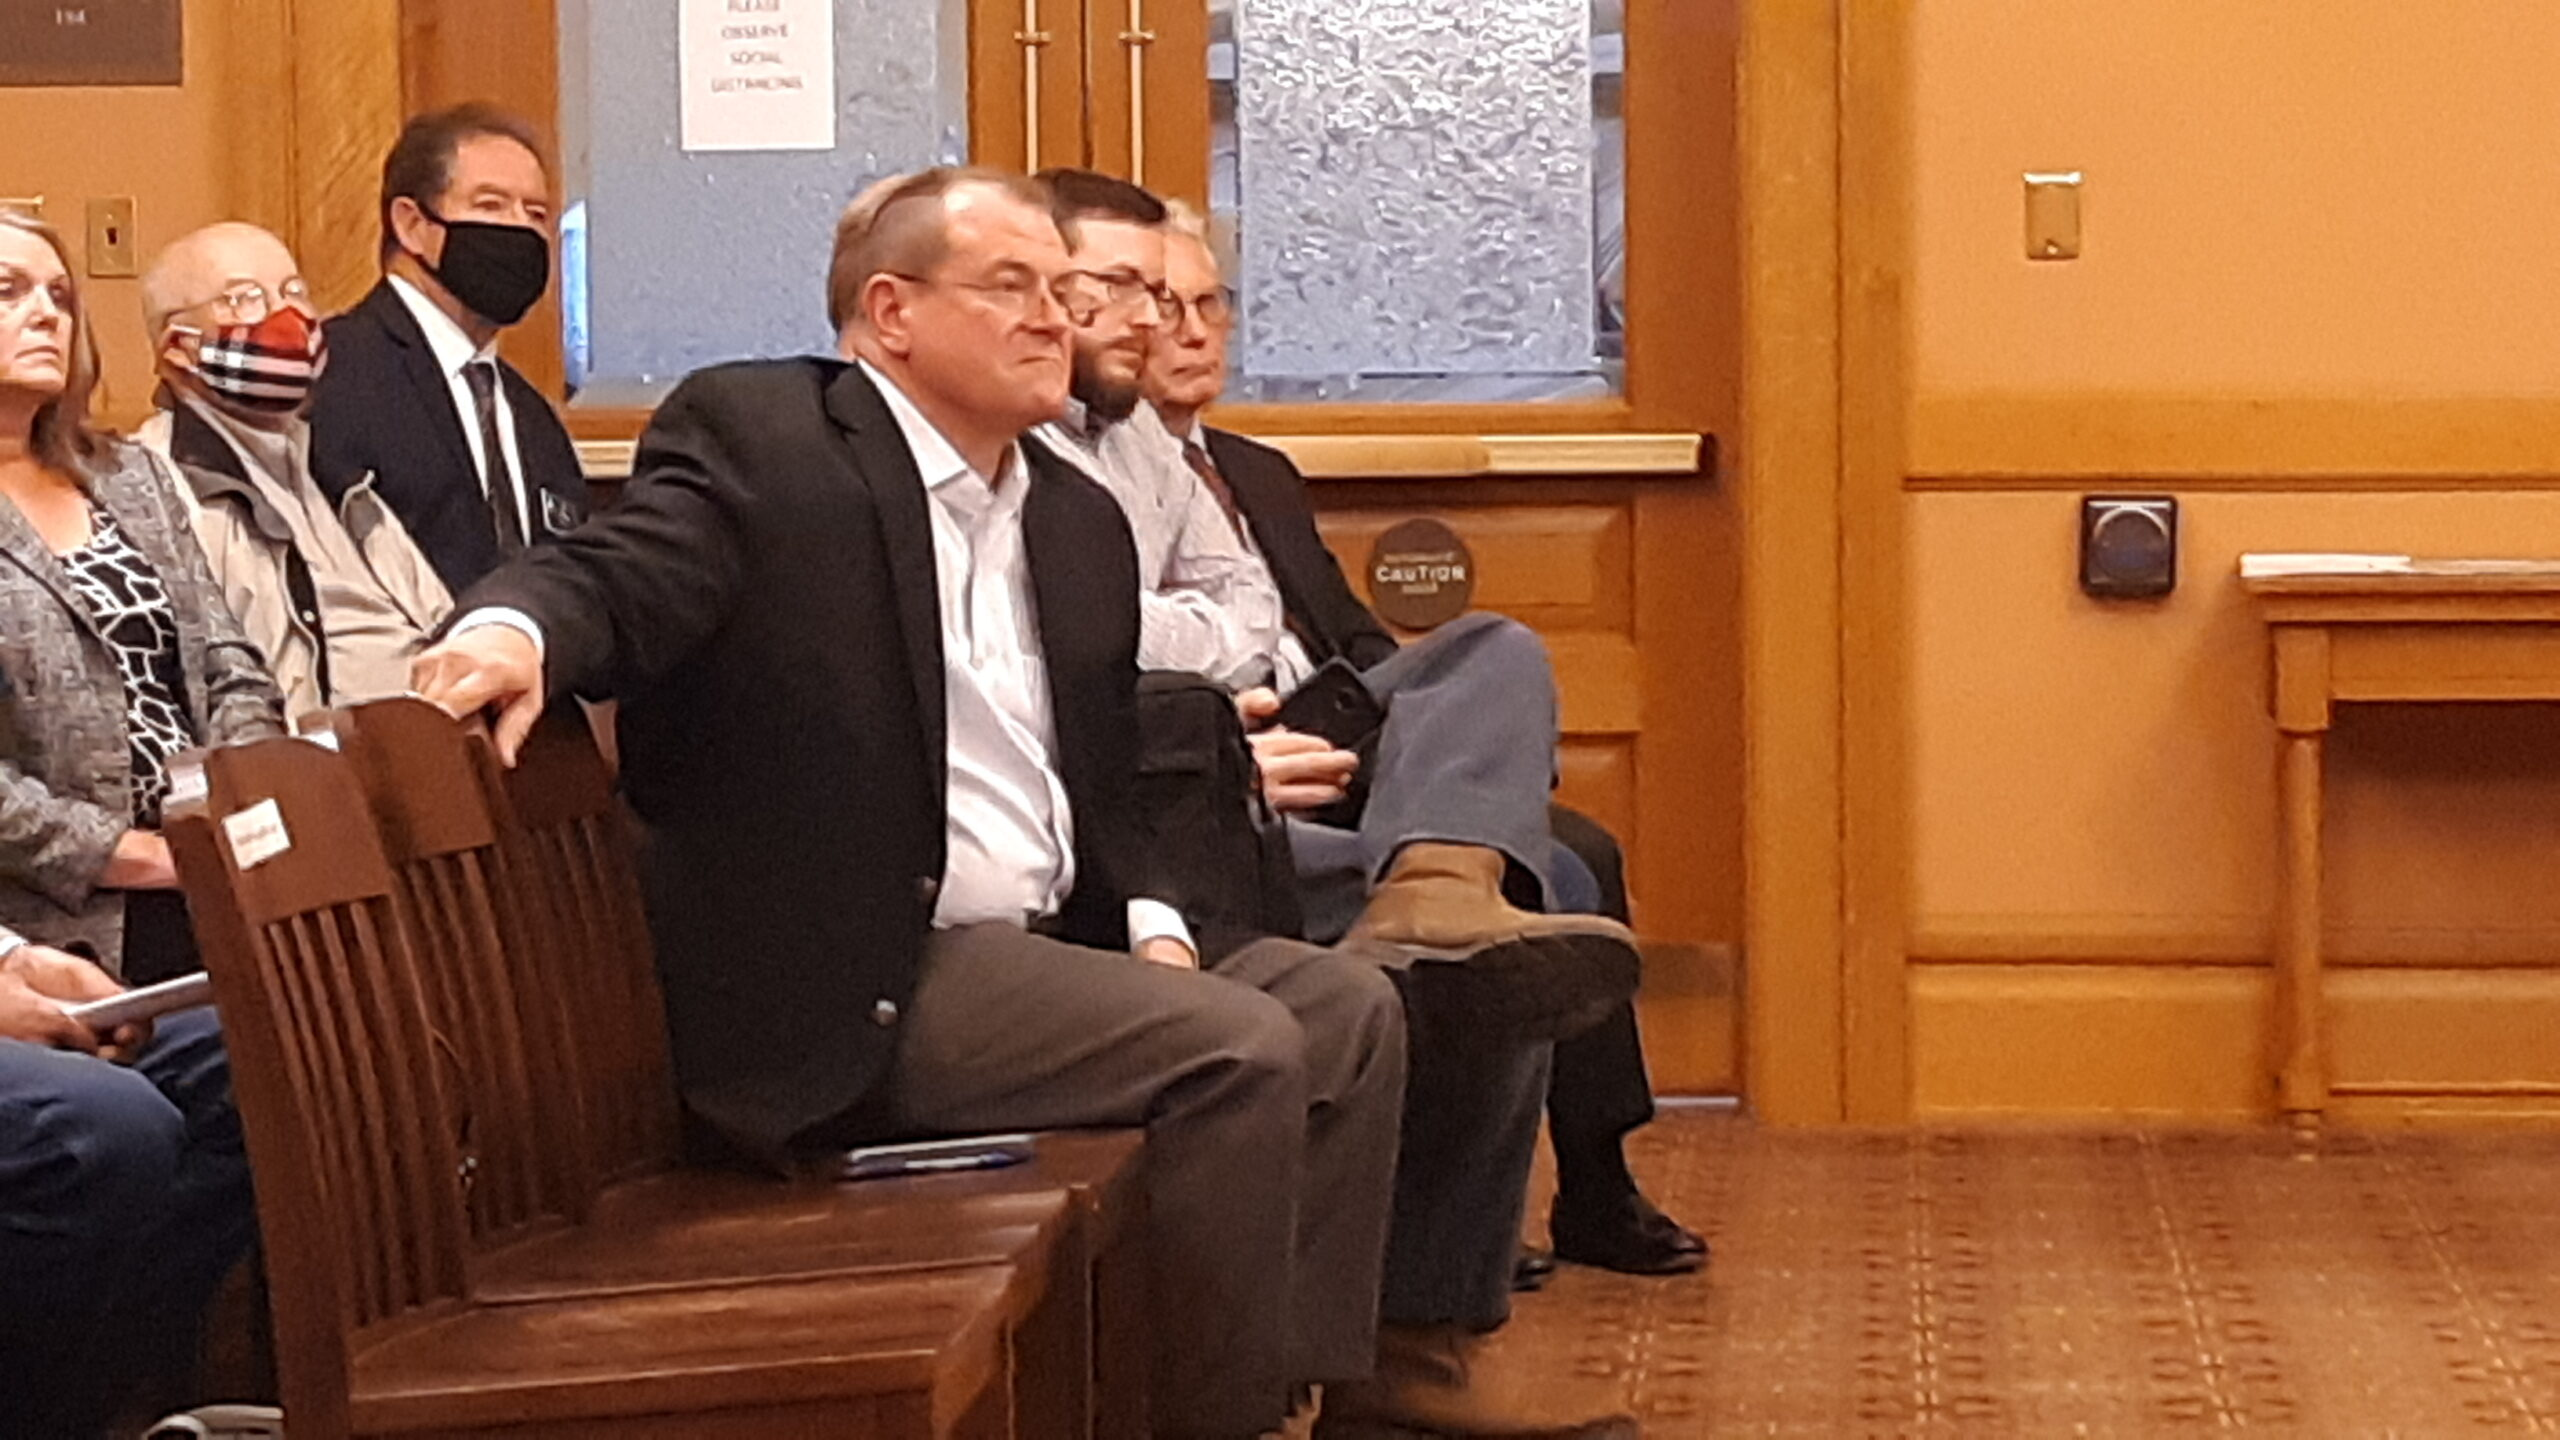 Anderson County resident Mike Burns, center, registered support Monday for a Senate bill that would impose sweeping regulations on wind farm developments and protect property rights of people living in rural areas with terrain and breezes to support turbines. (Tim Carpenter/Kansas Reflector)